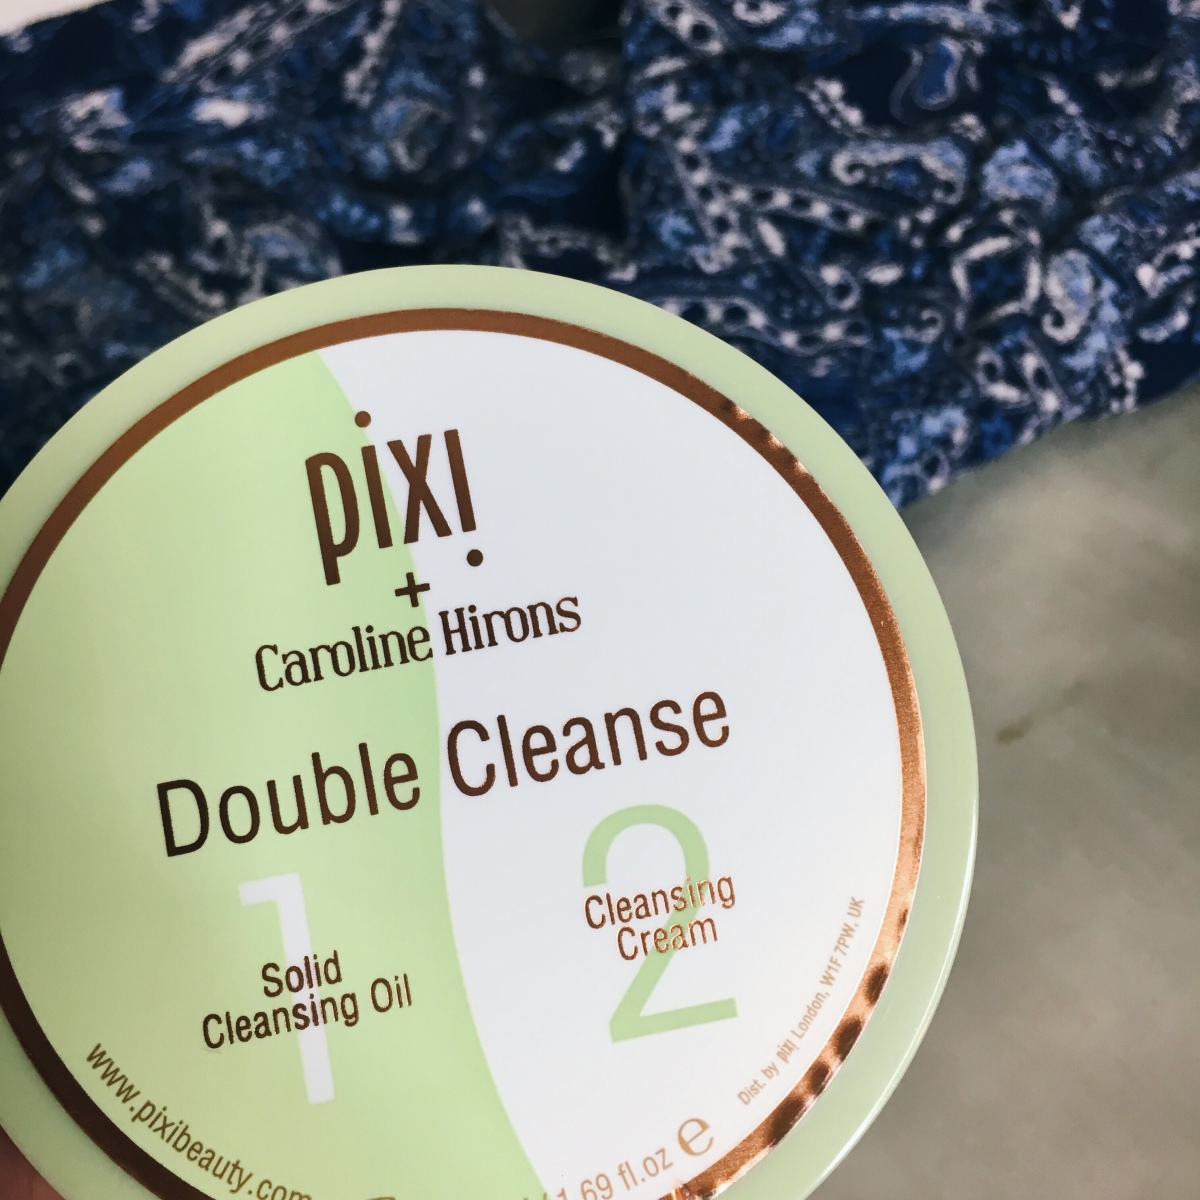 Pixi Beauty x Caroline Hirons | Double Cleanse | Review